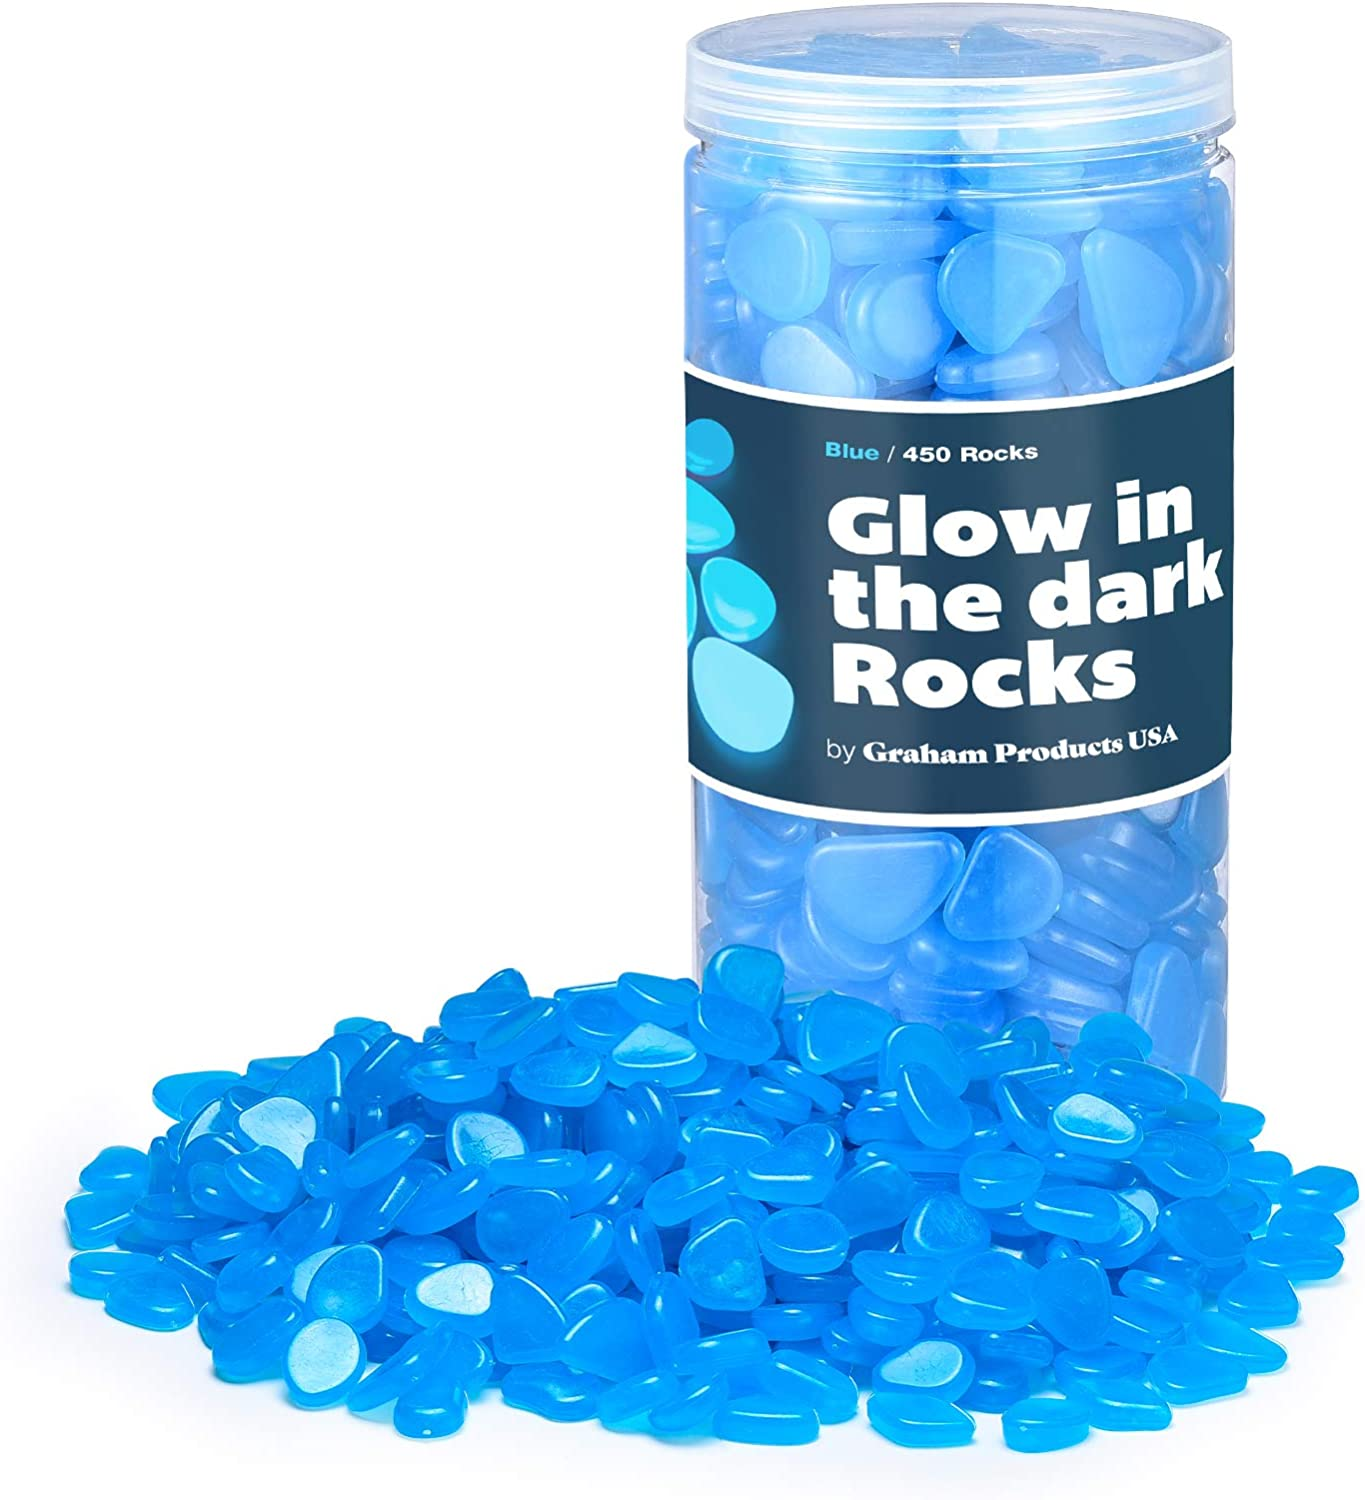 Save money Graham Products Glow in Super sale period limited The Stones Glowing Non-Toxic Dark Rocks